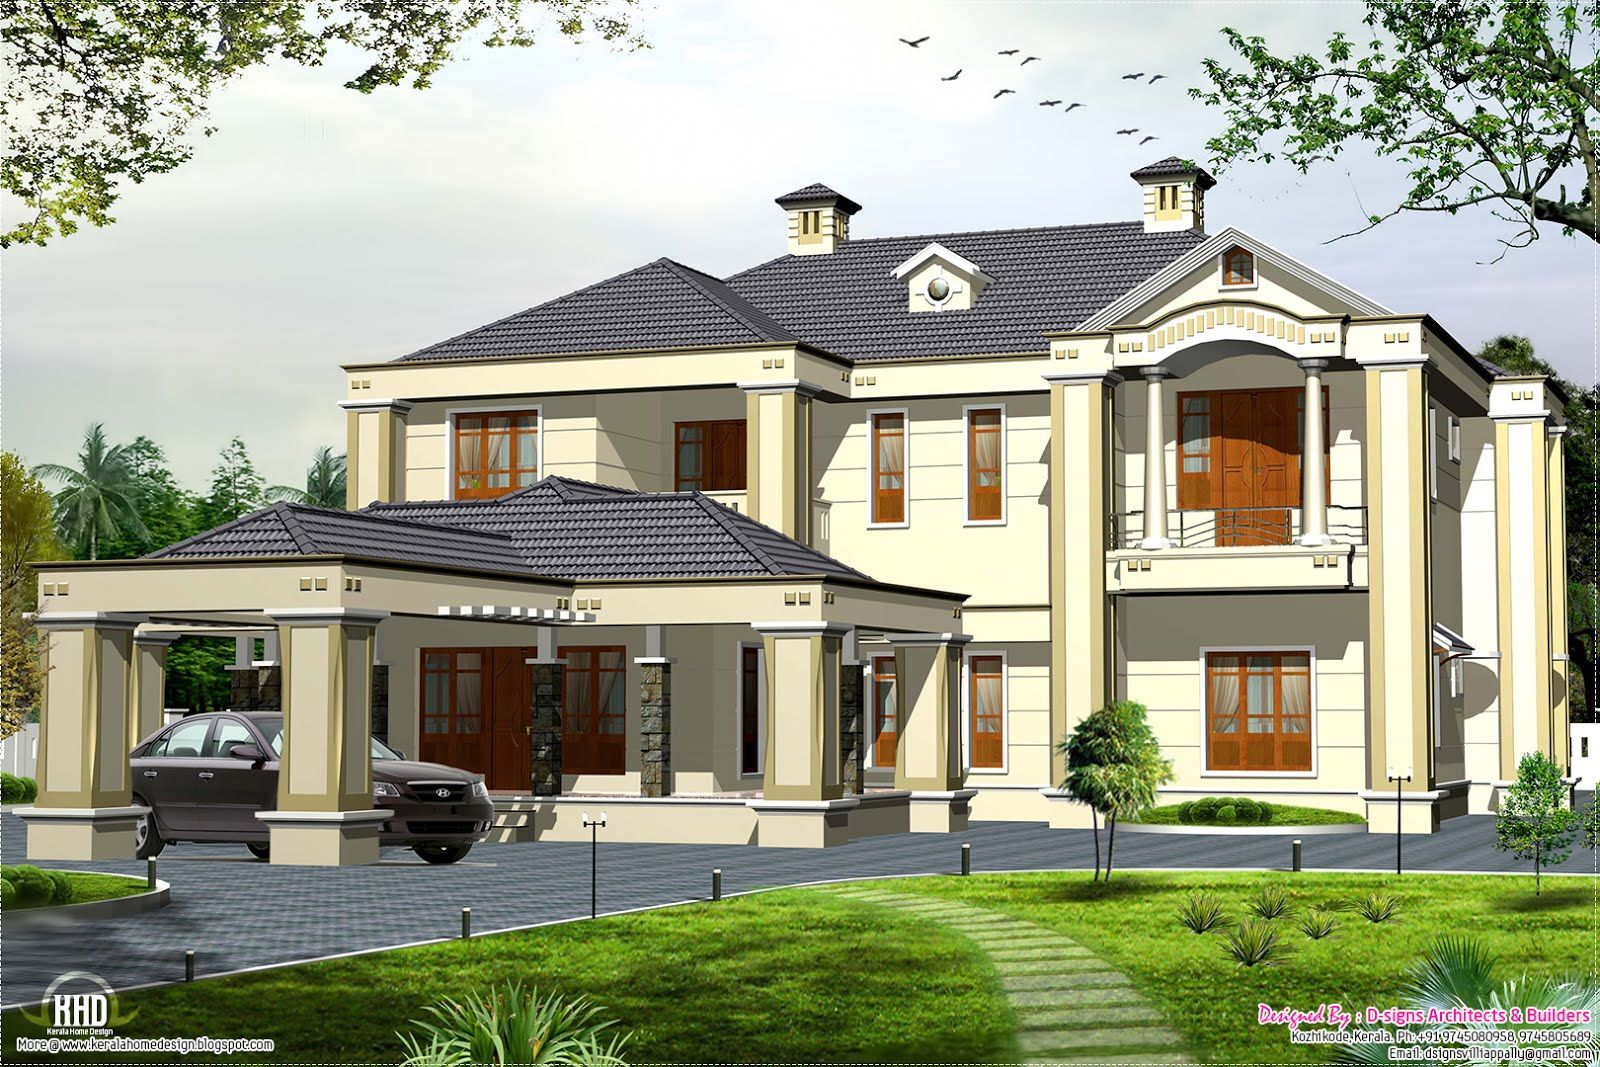 Colonial style 5 bedroom Victorian style house in 2020 ...